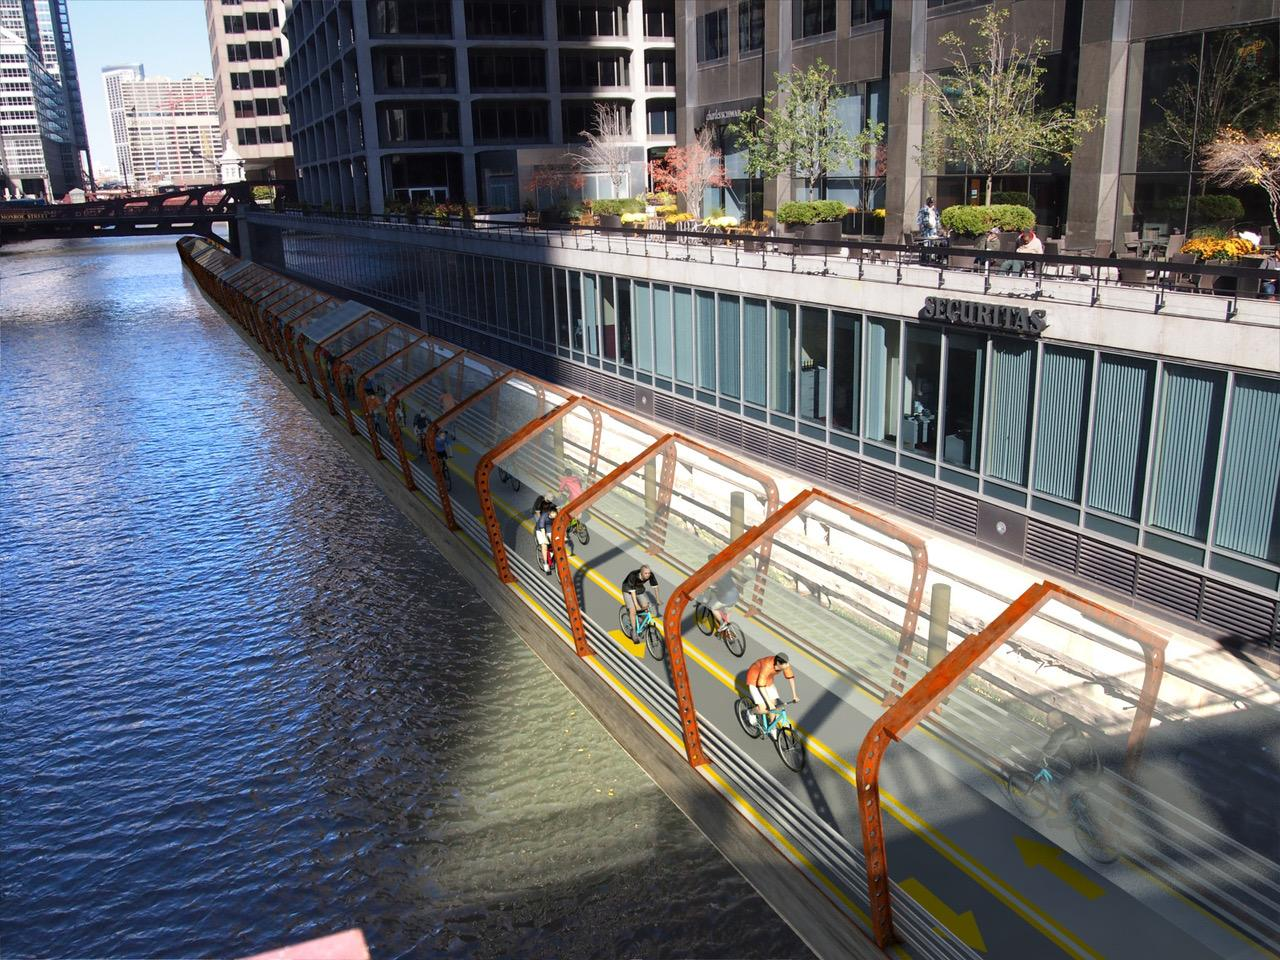 The RiverRide path would be installed on the North and South branches of the Chicago River